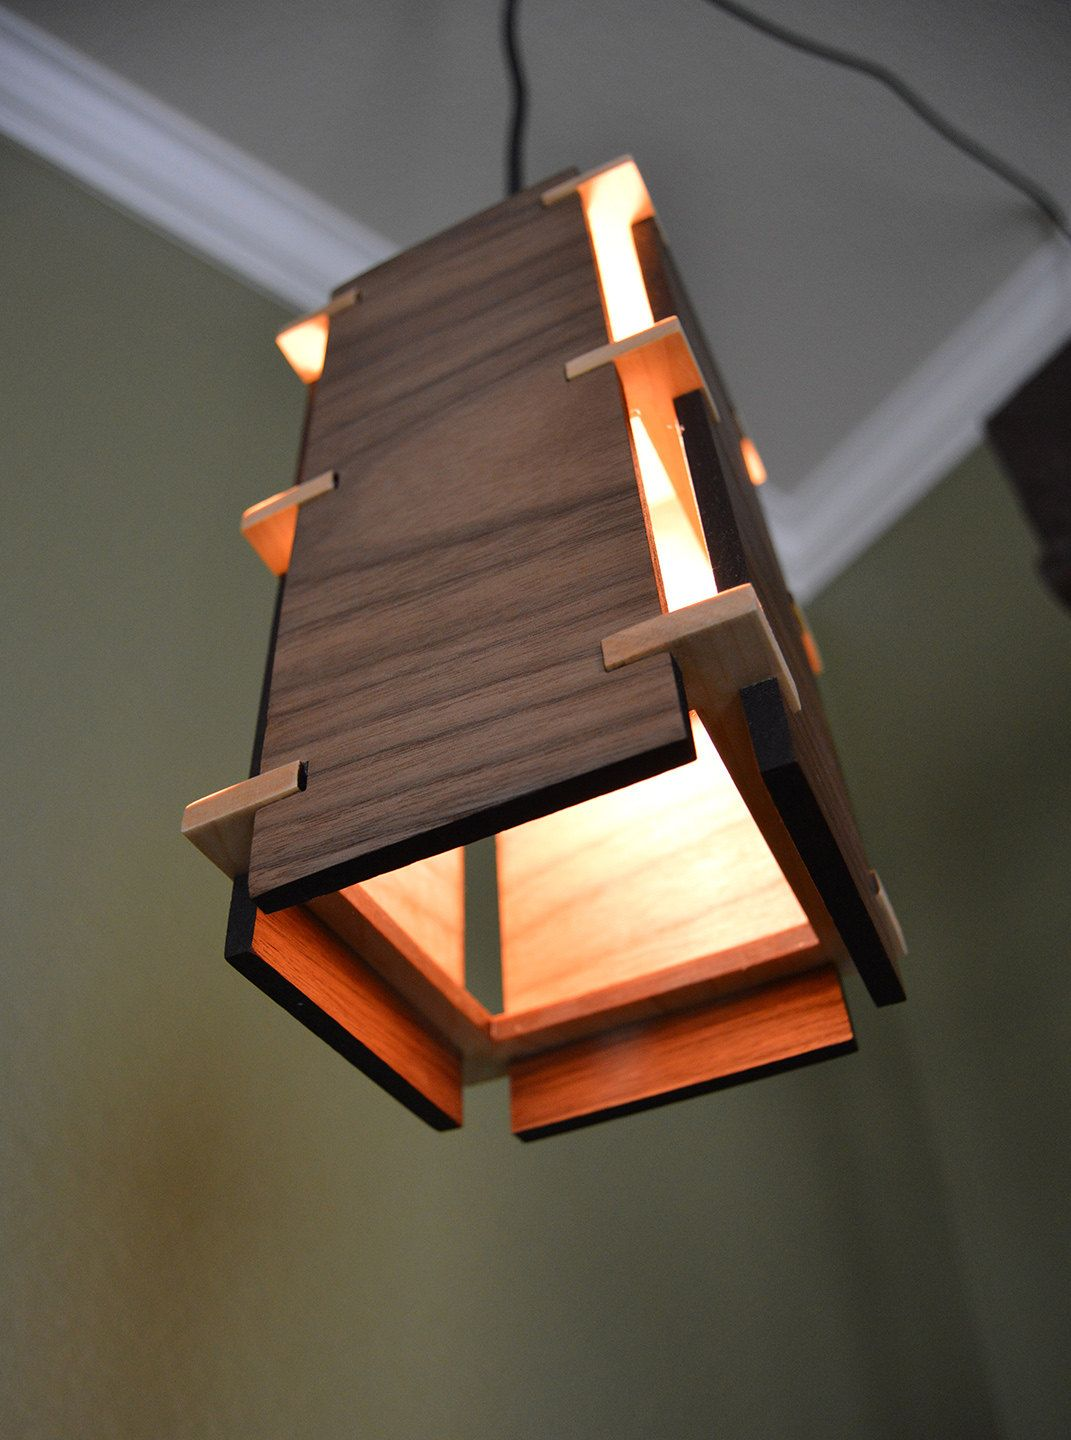 This Is A Simplistic But Beautiful Wooden Pendant Light With Clic Lines From The Craftsman Era Stunning Fixture Will Brighten Up Any Room